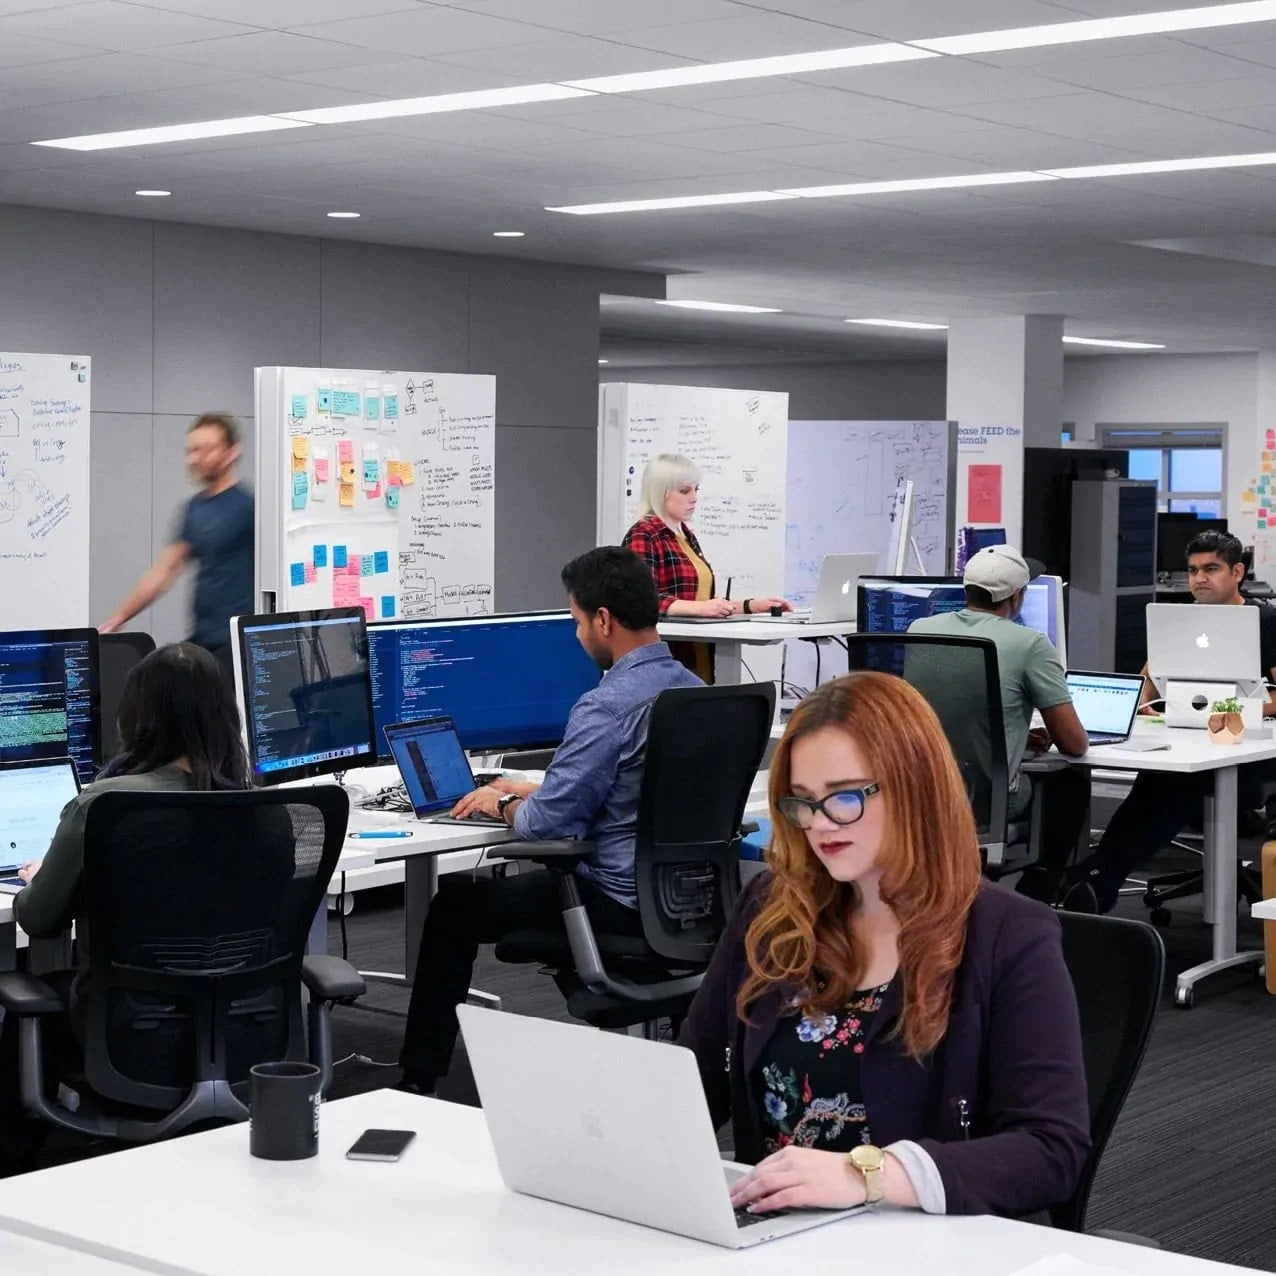 Several employees at and around desks with computers